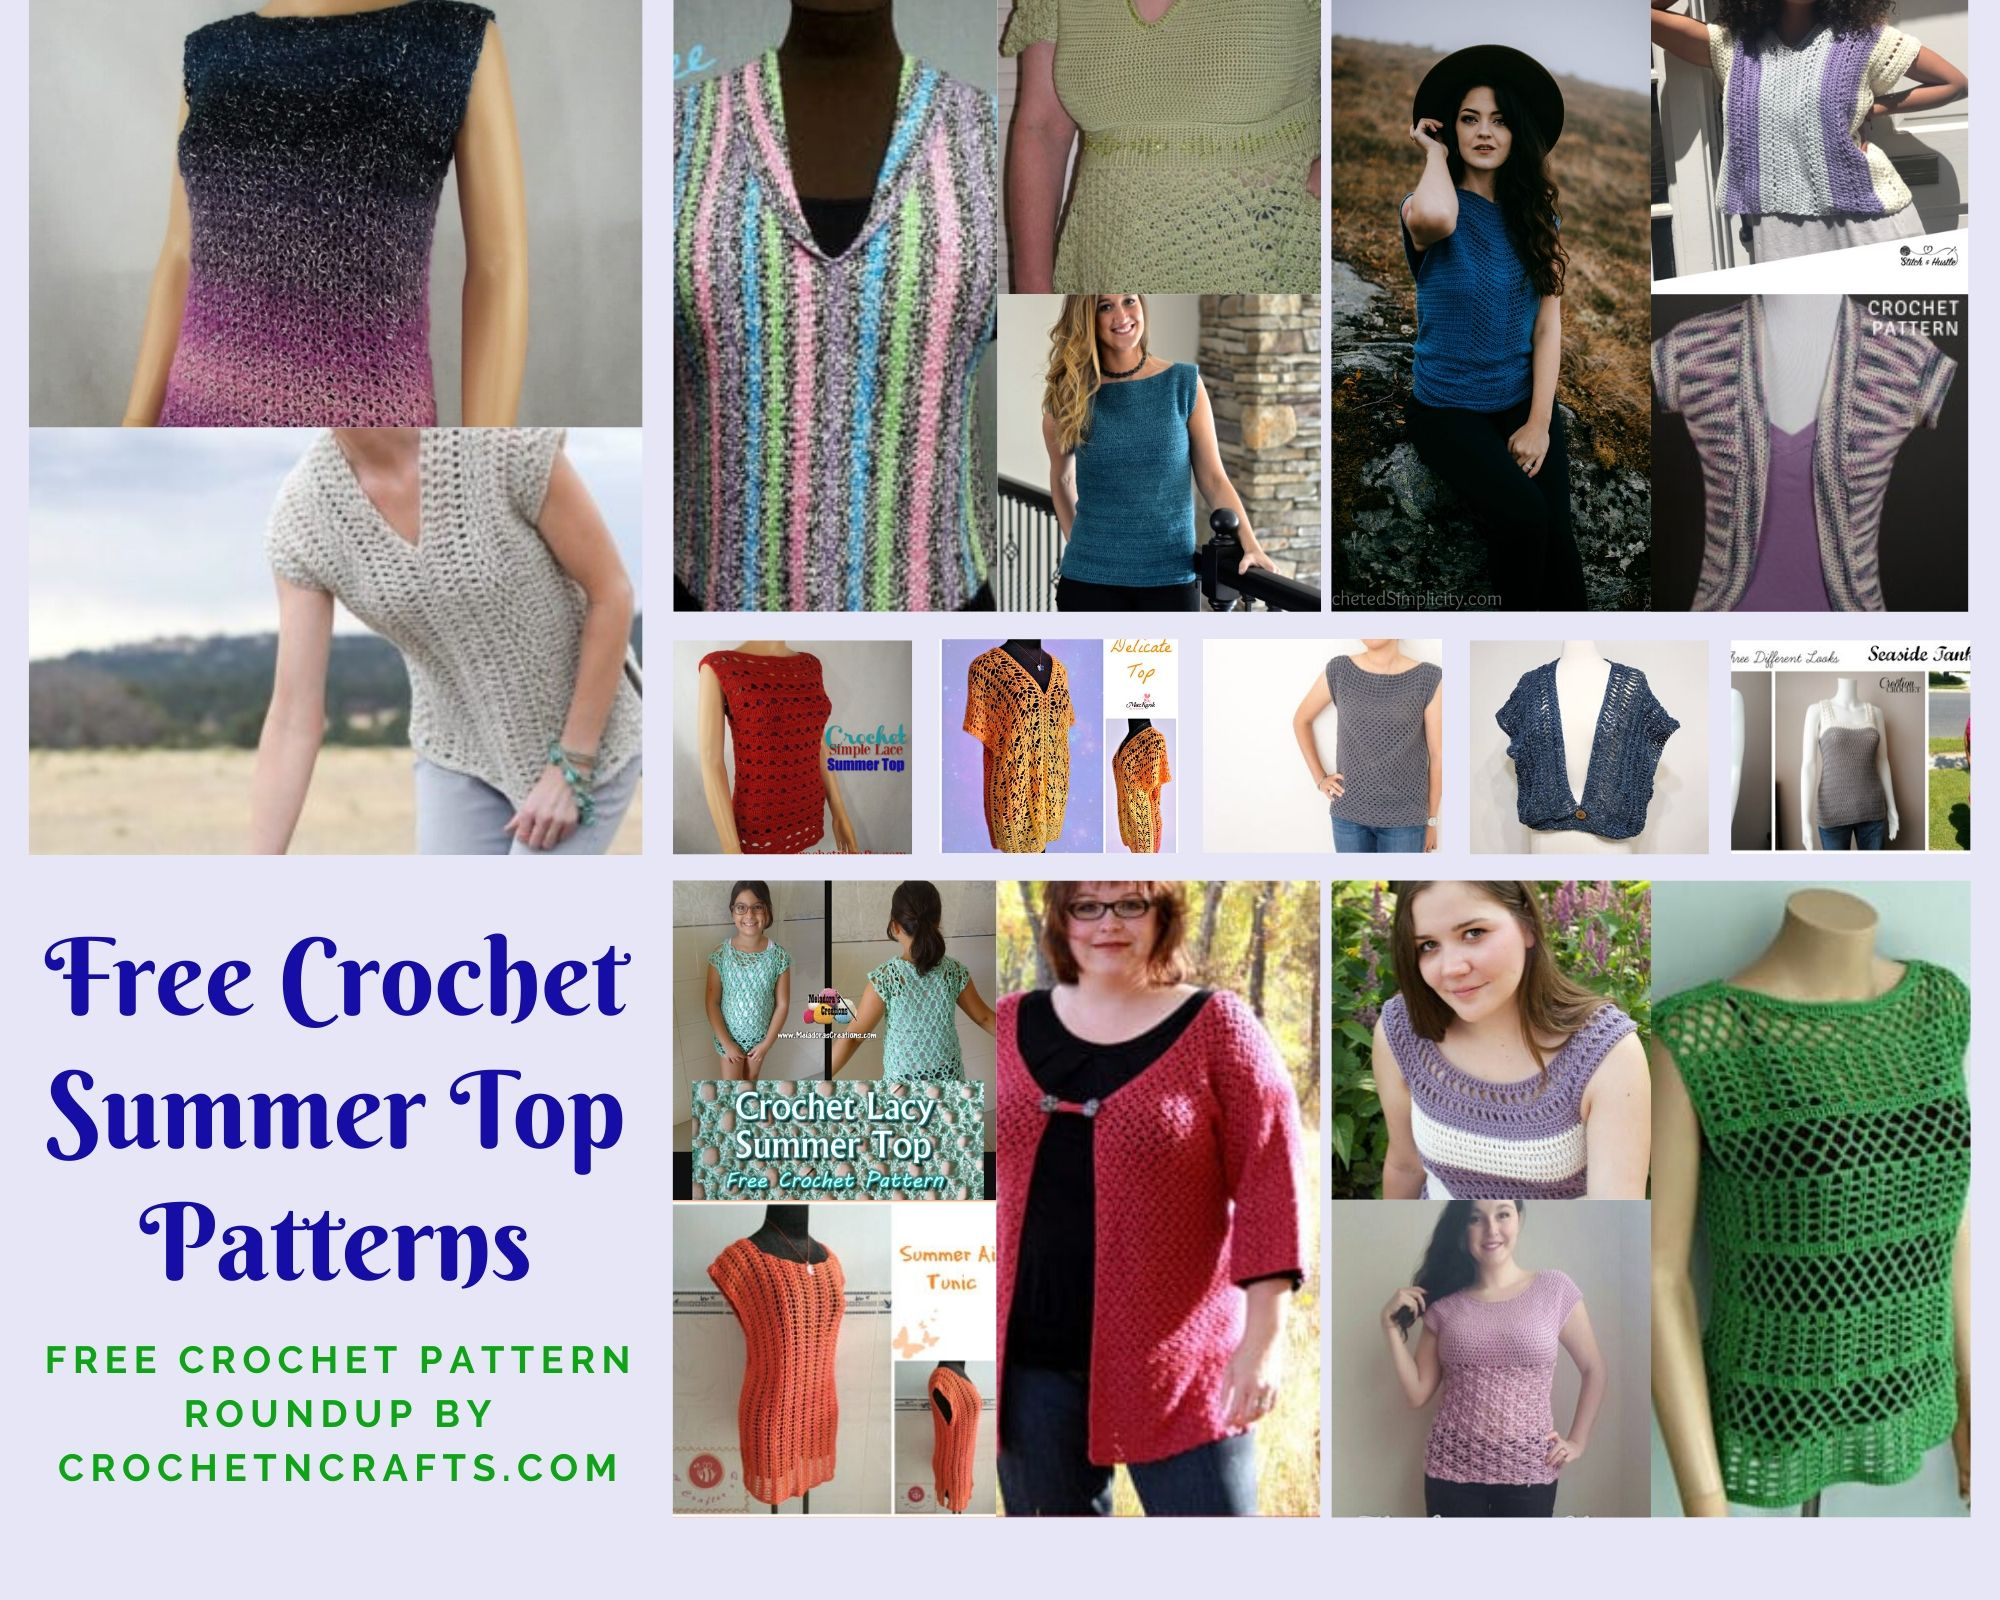 Collage of Crochet Summer Tops